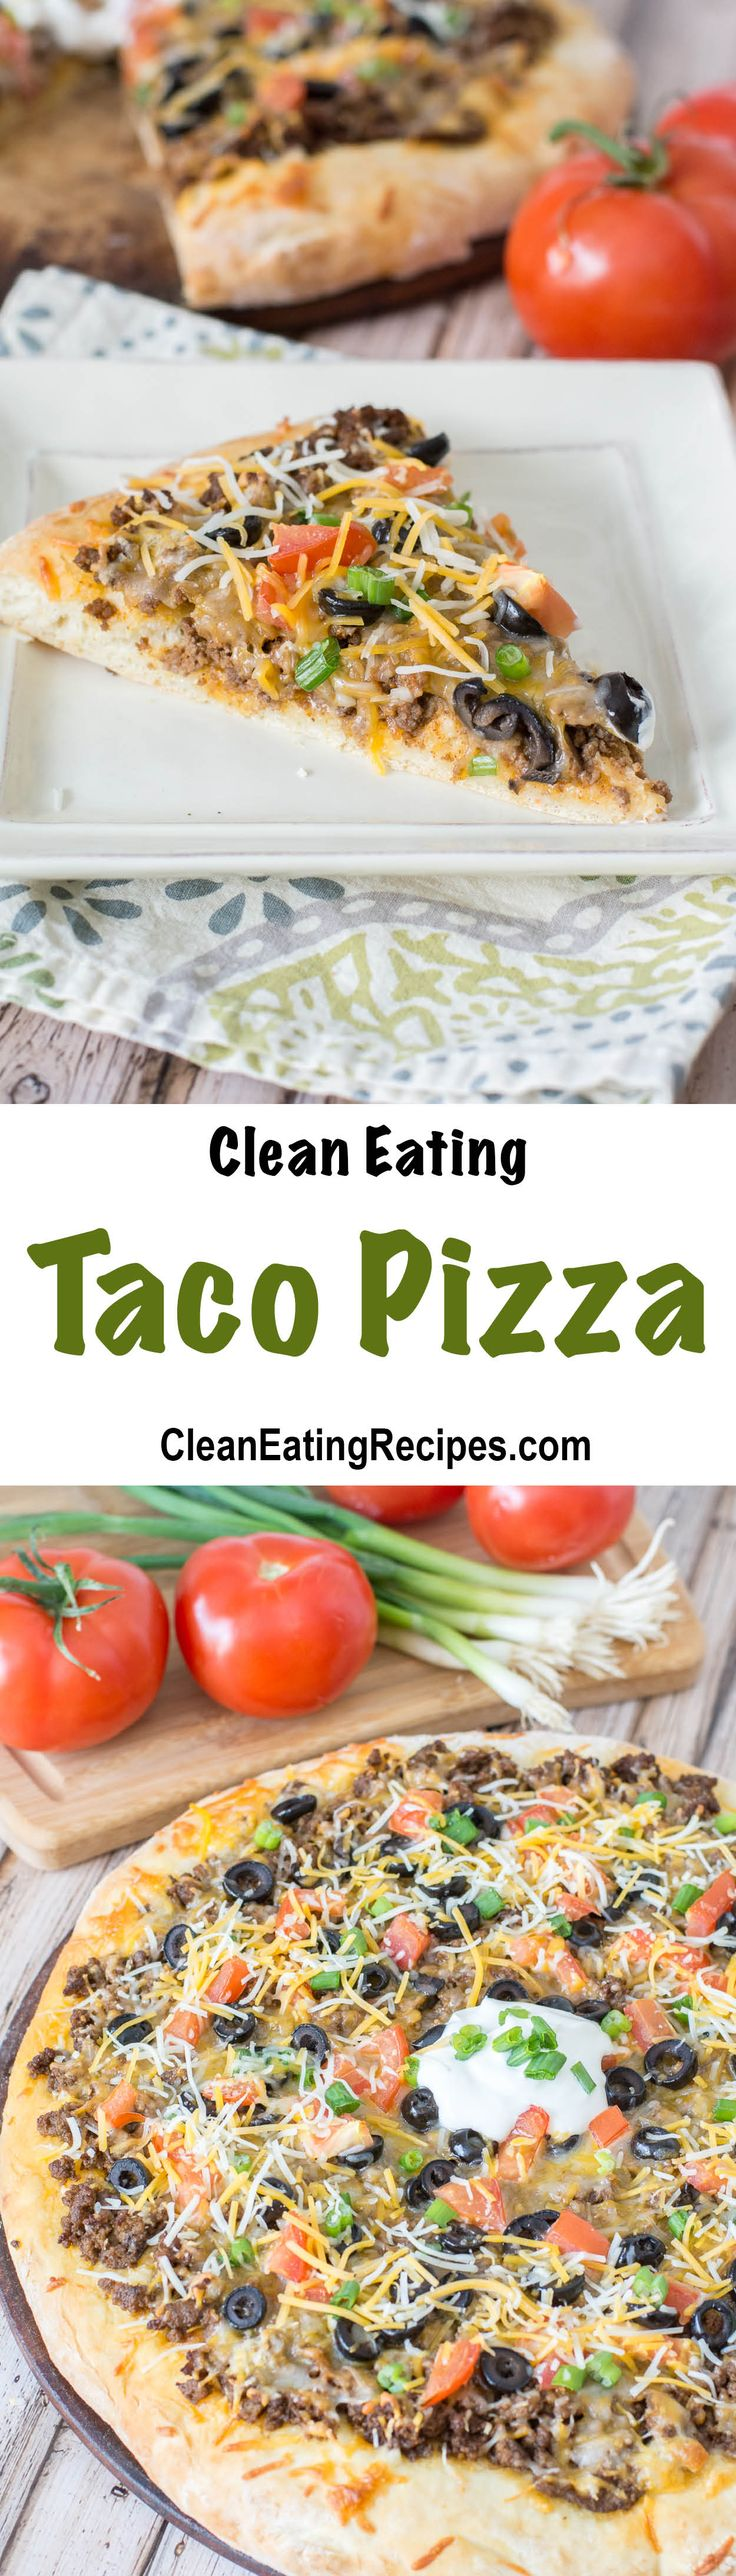 I love this Clean Eating Taco Pizza! It's a lot healthier than pepperoni and my kids love it.